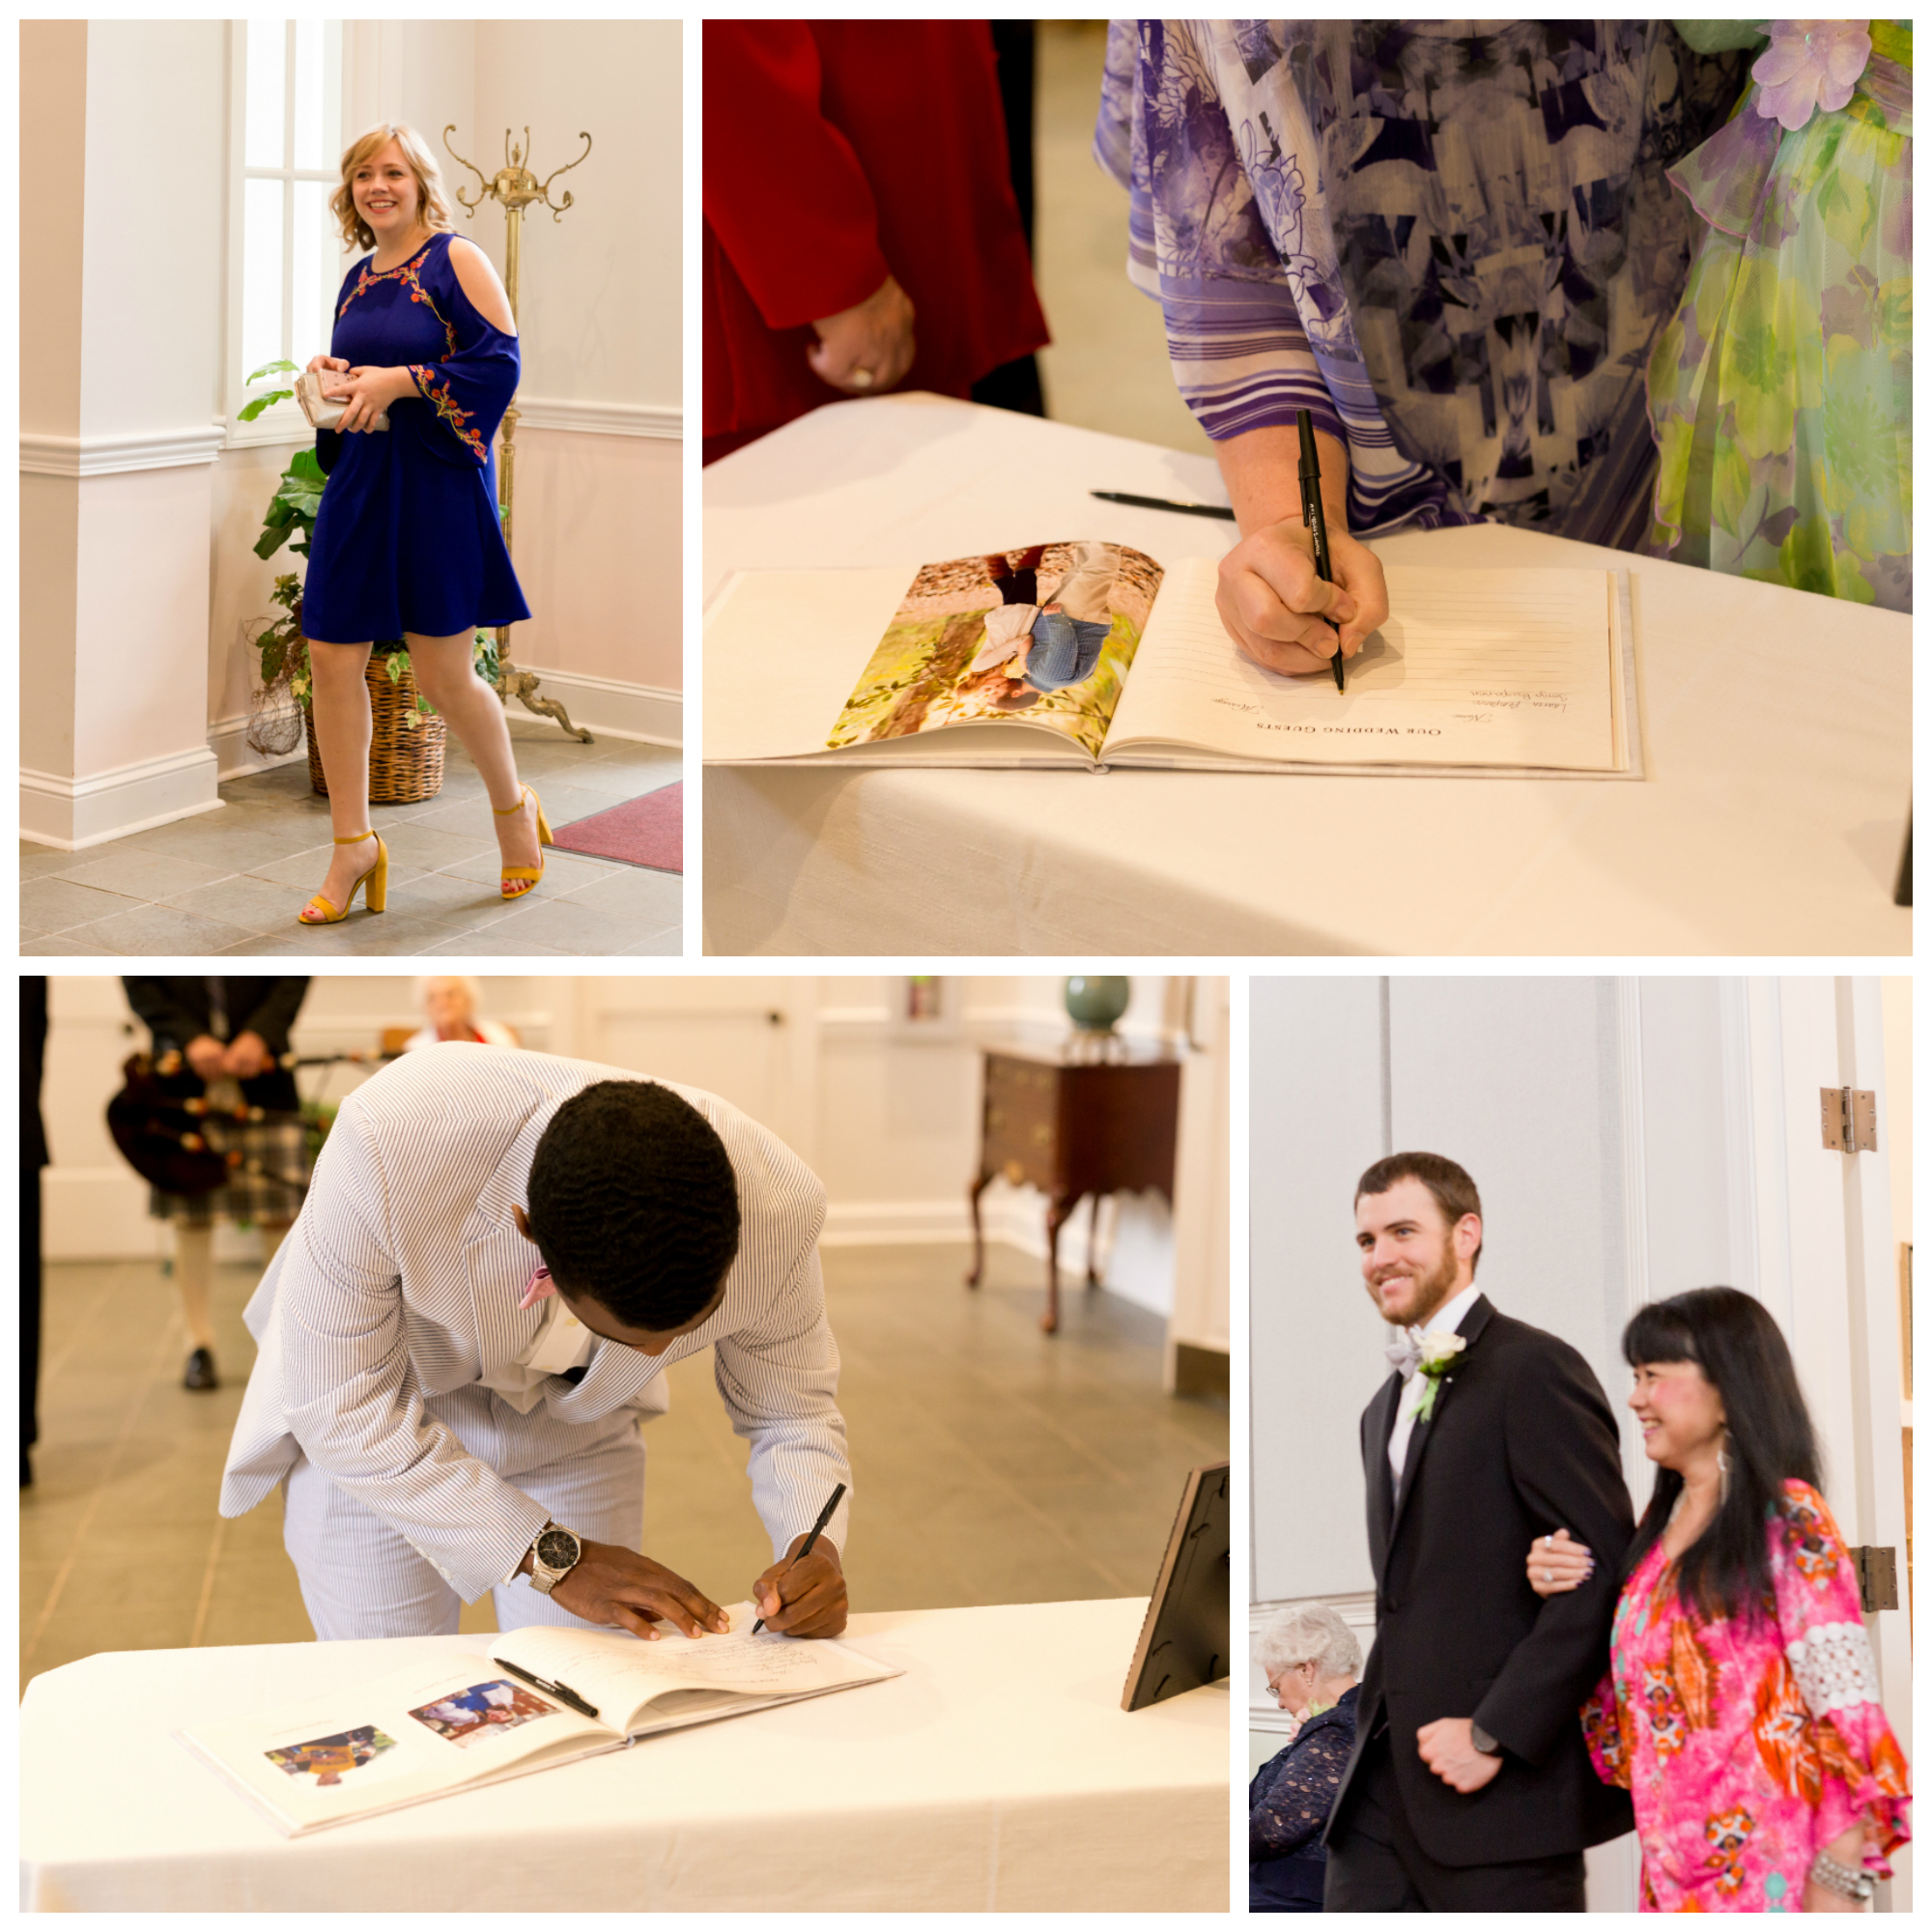 wedding guests arriving and signing guest book